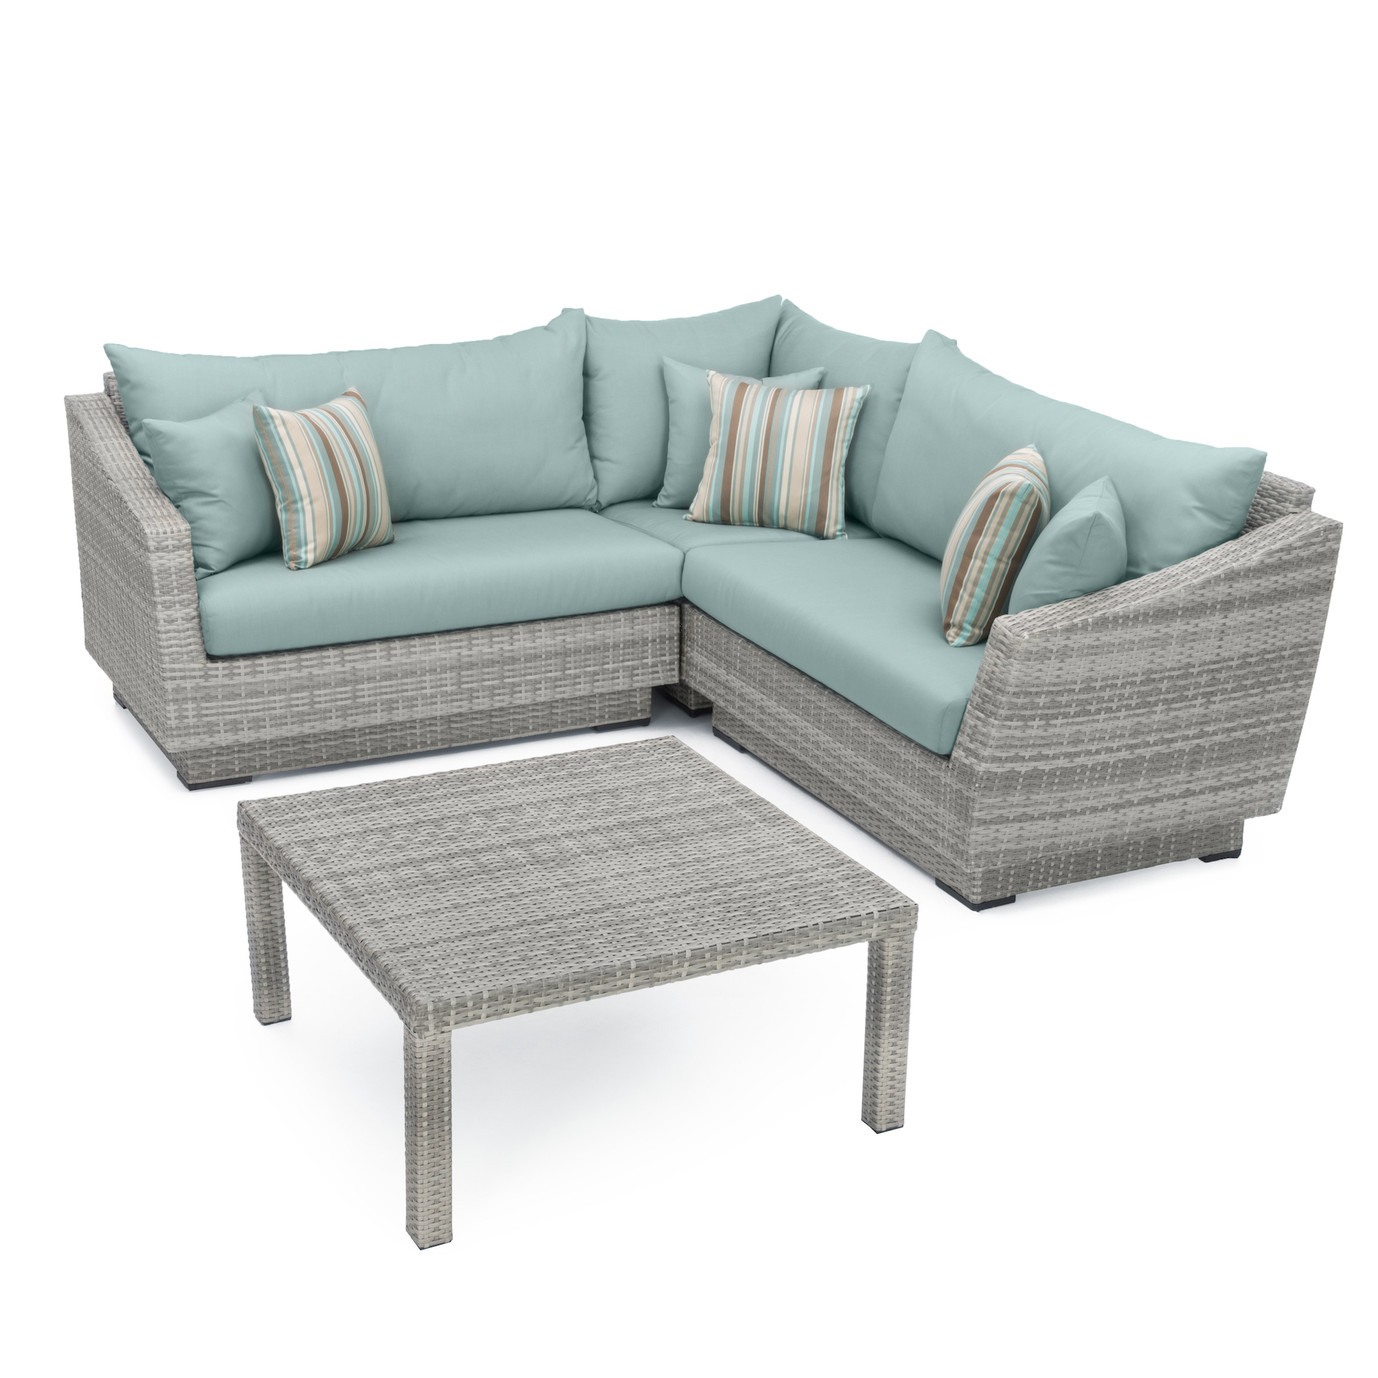 Cannes™ 4pc Sectional & Table - Bliss Blue